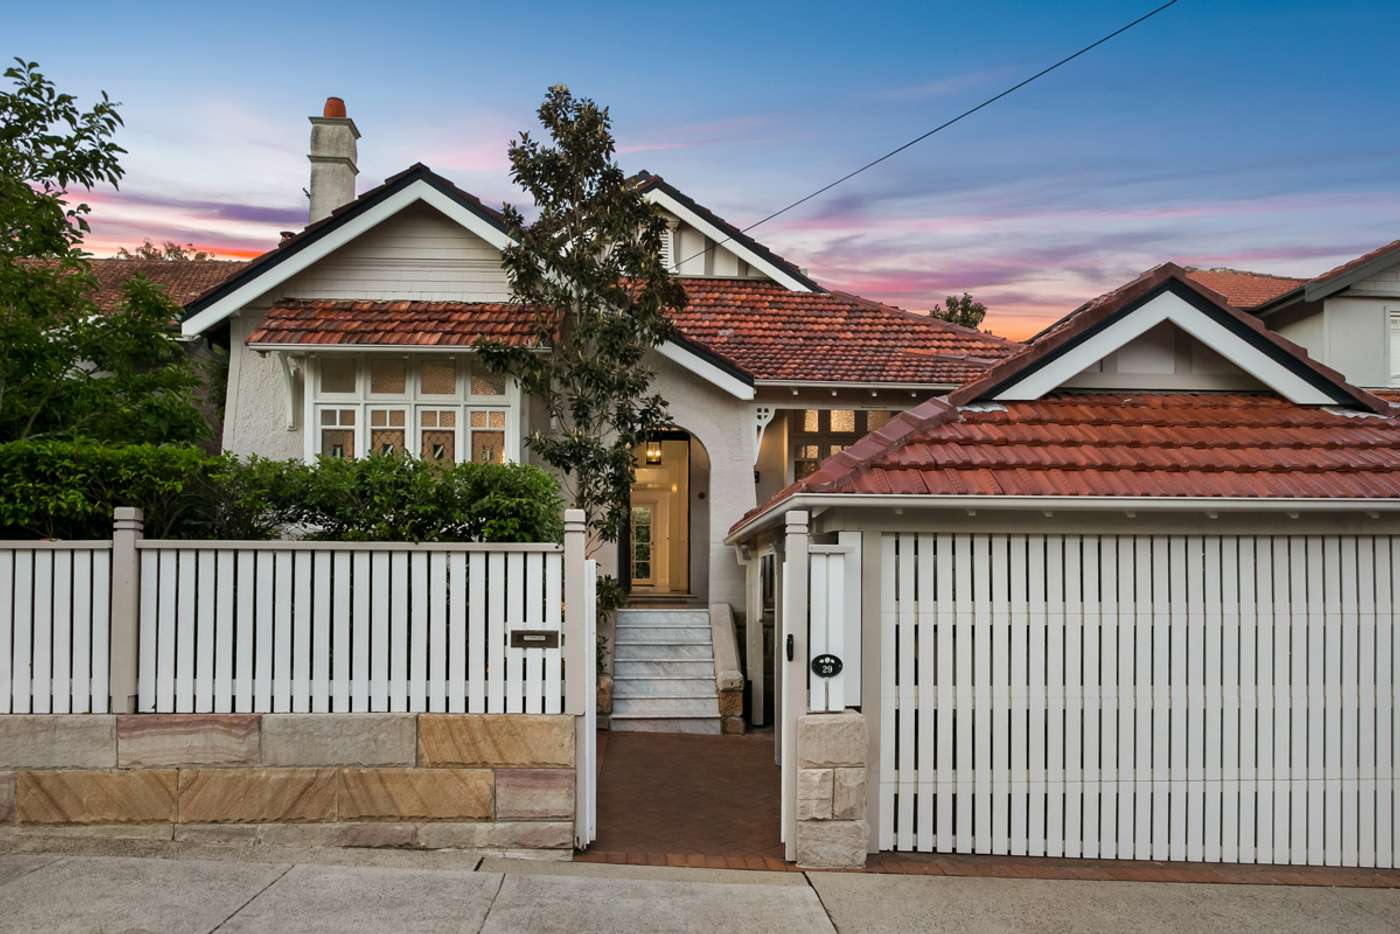 Main view of Homely house listing, 29 Brierley Street, Mosman NSW 2088